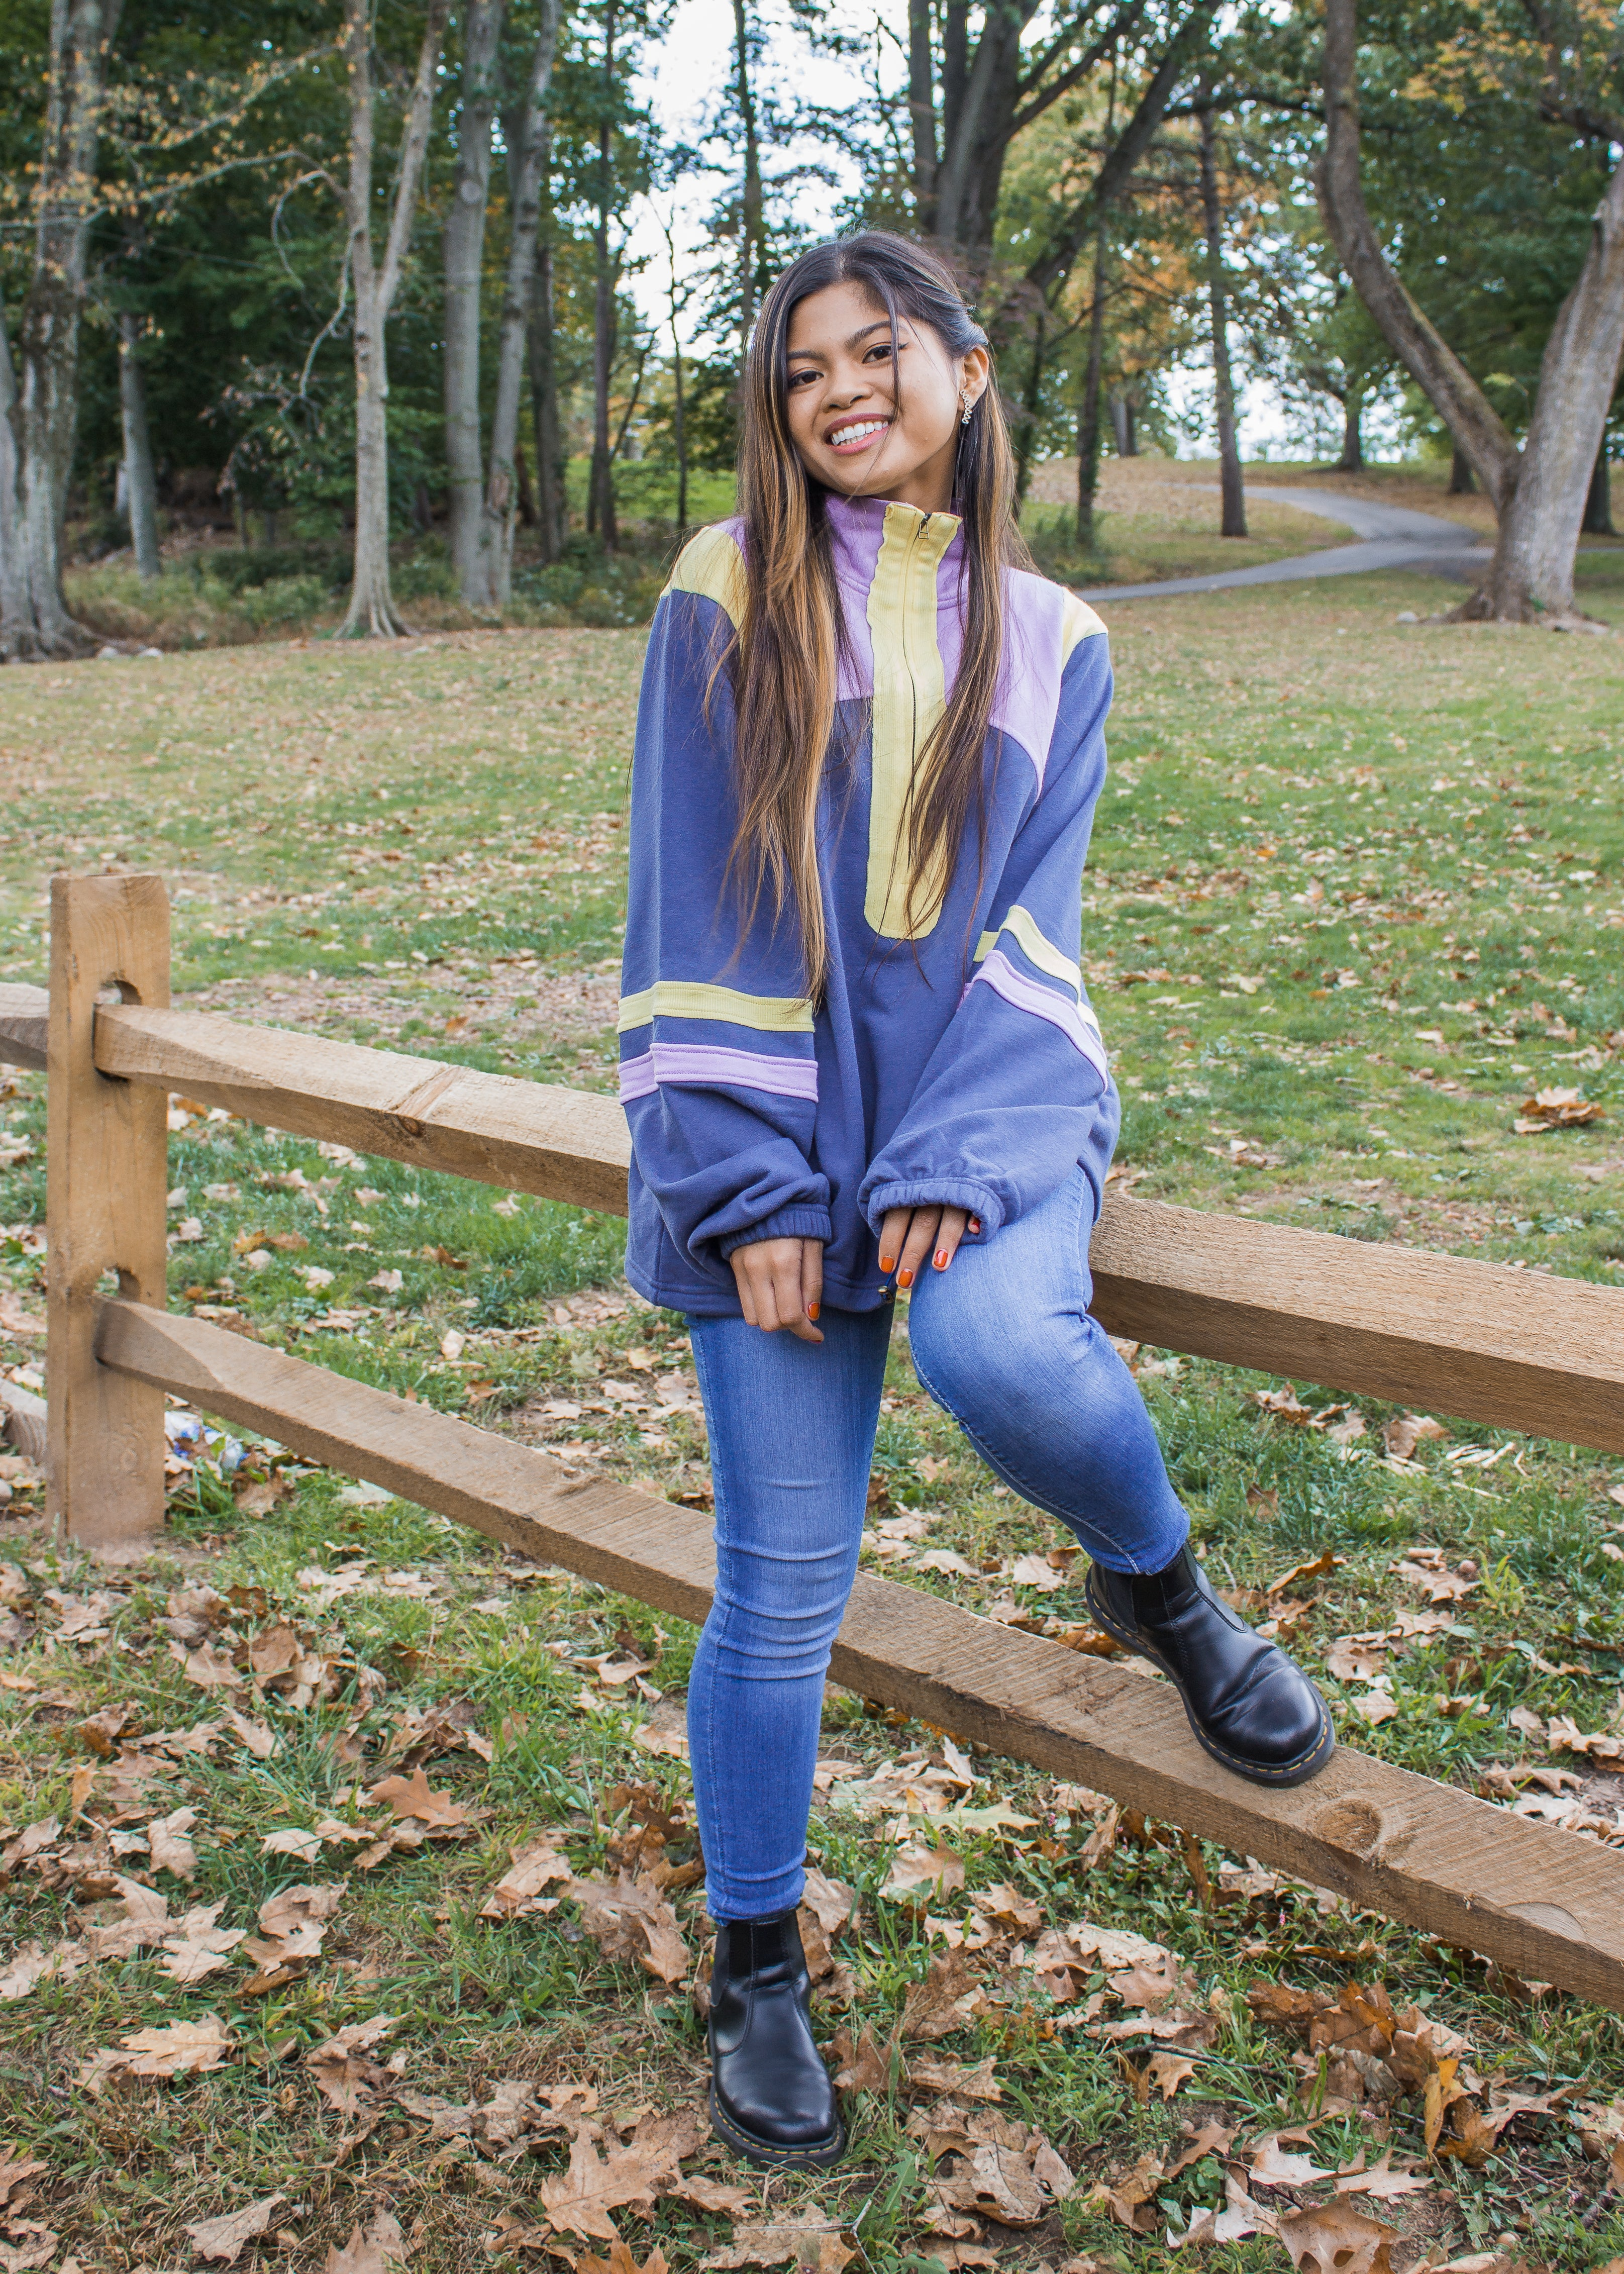 Daphne Zipped Pullover